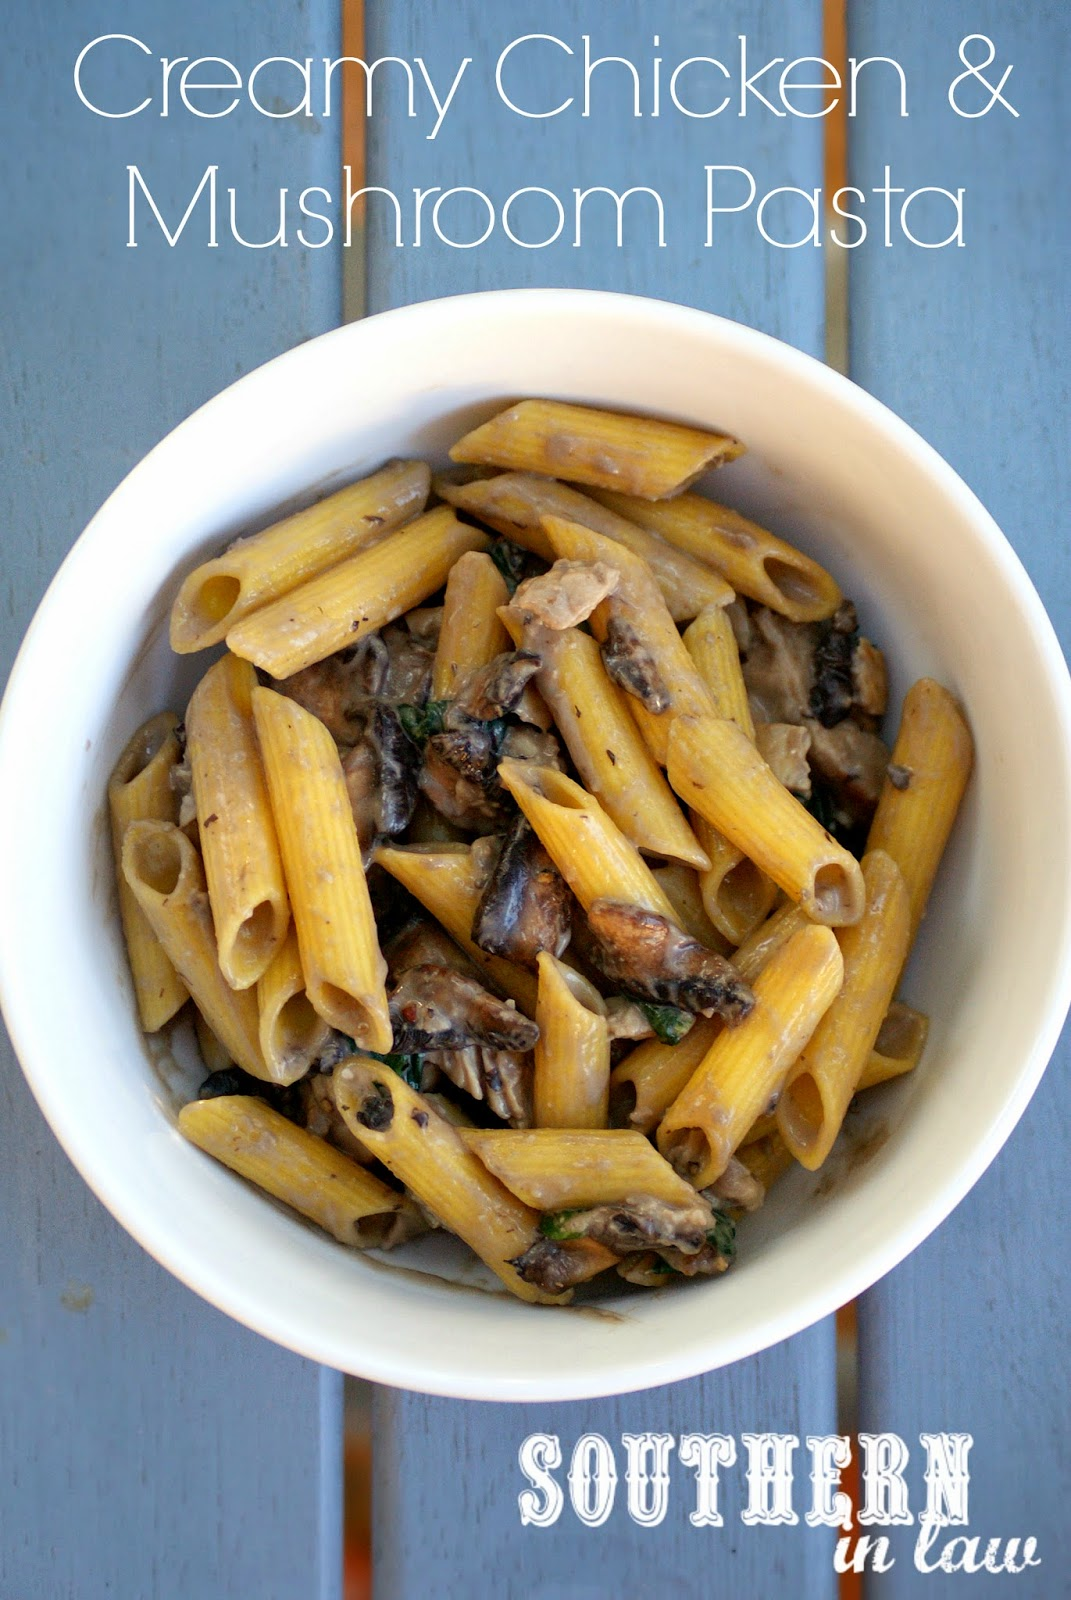 Low Fat Creamy Chicken and Mushroom Pasta Recipe - healthy, gluten free, clean eating friendly